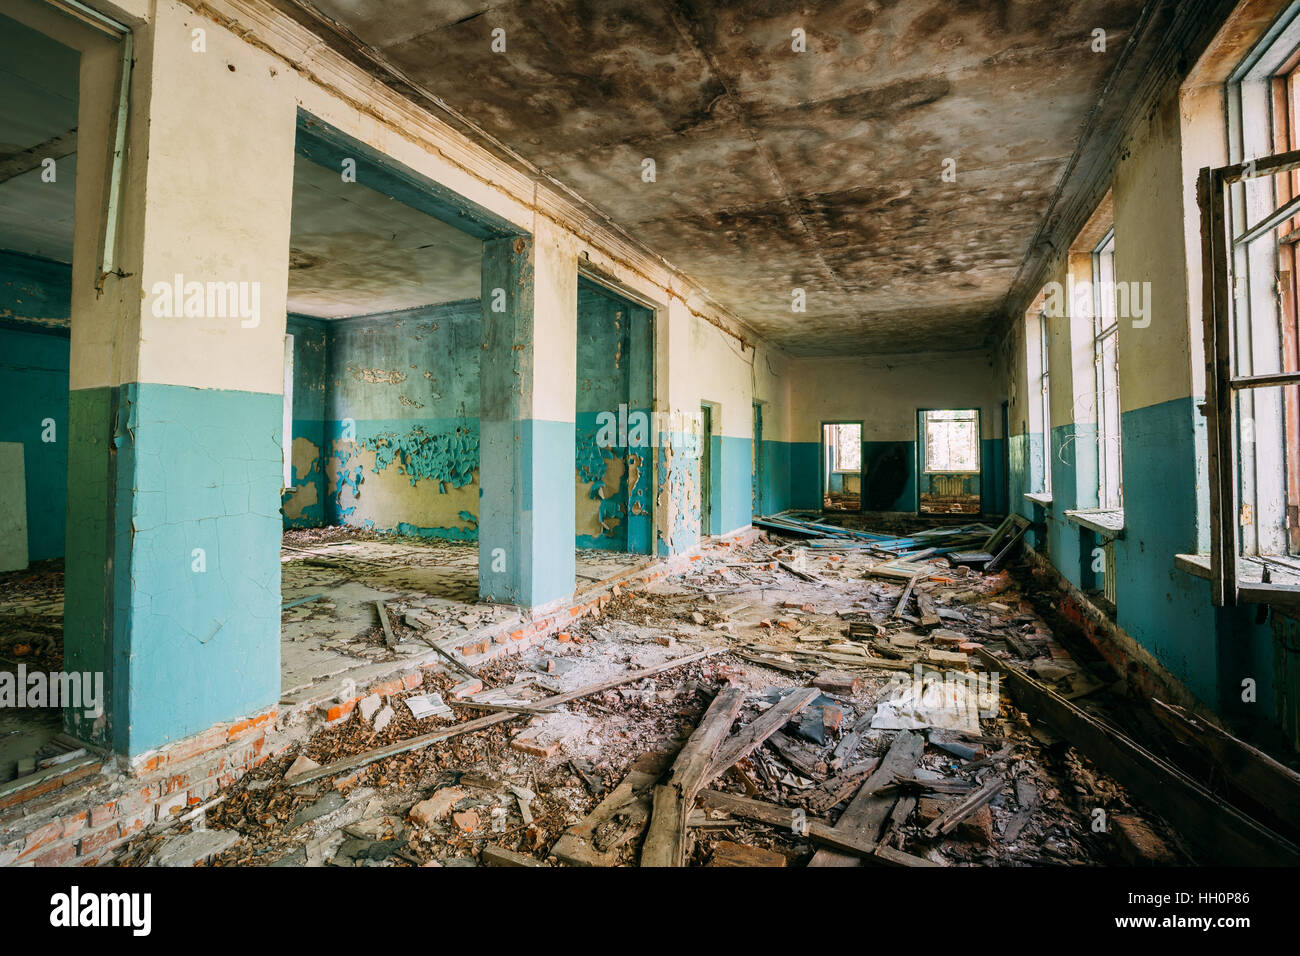 The Ruined Hall Of Abandoned Rural School After Chernobyl Disaster In Evacuation Zone. The Terrible Consequences Stock Photo